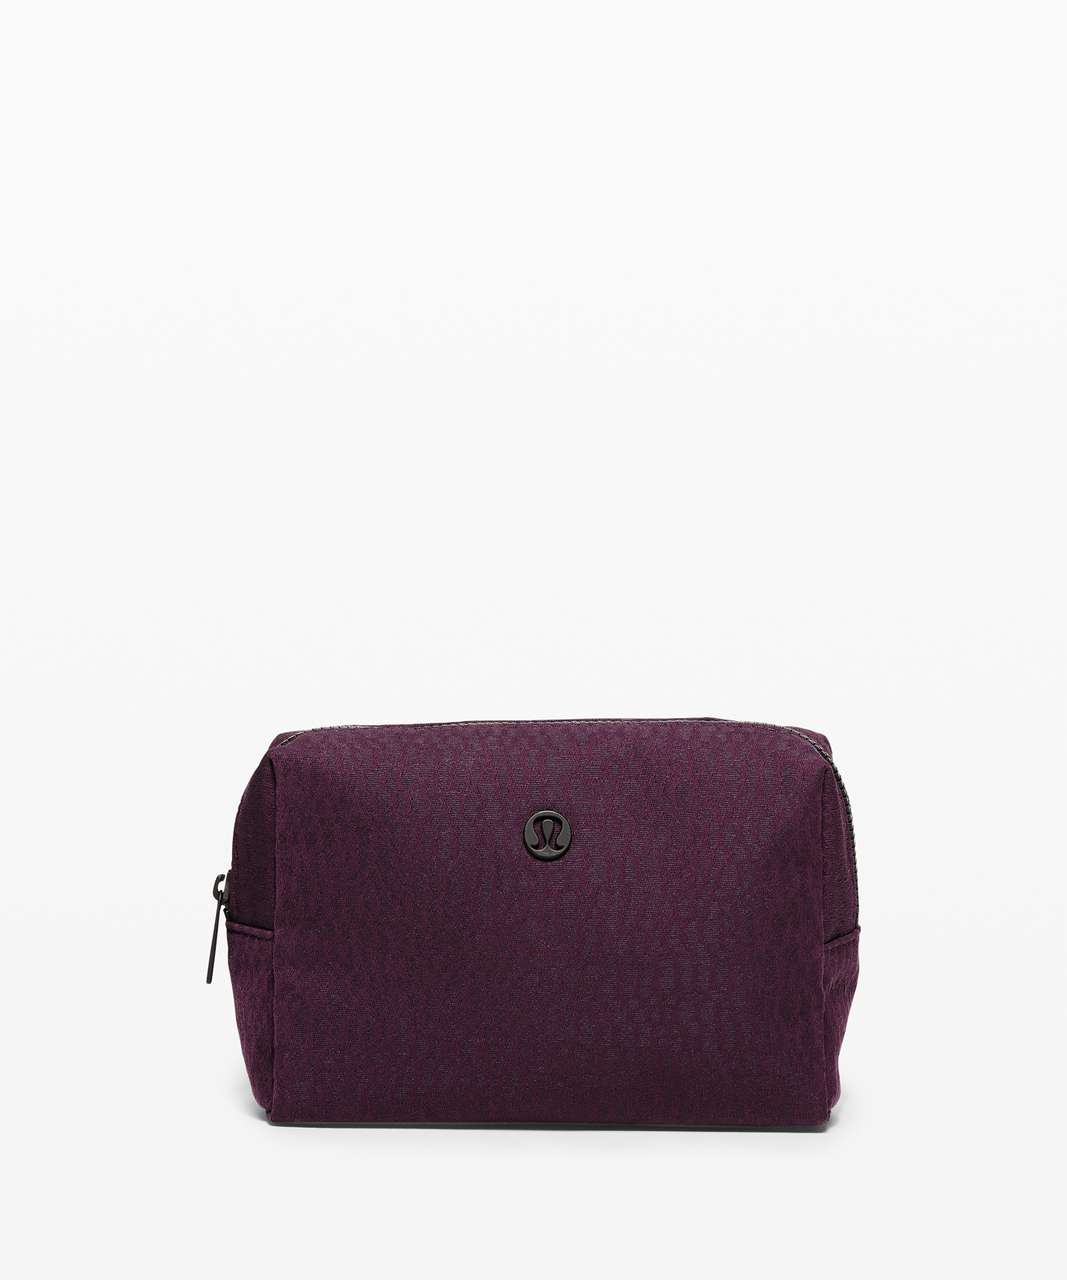 Lululemon All Your Small Things Pouch *Mini 2L - Stacked Jacquard Black Cherry Nocturnal Teal